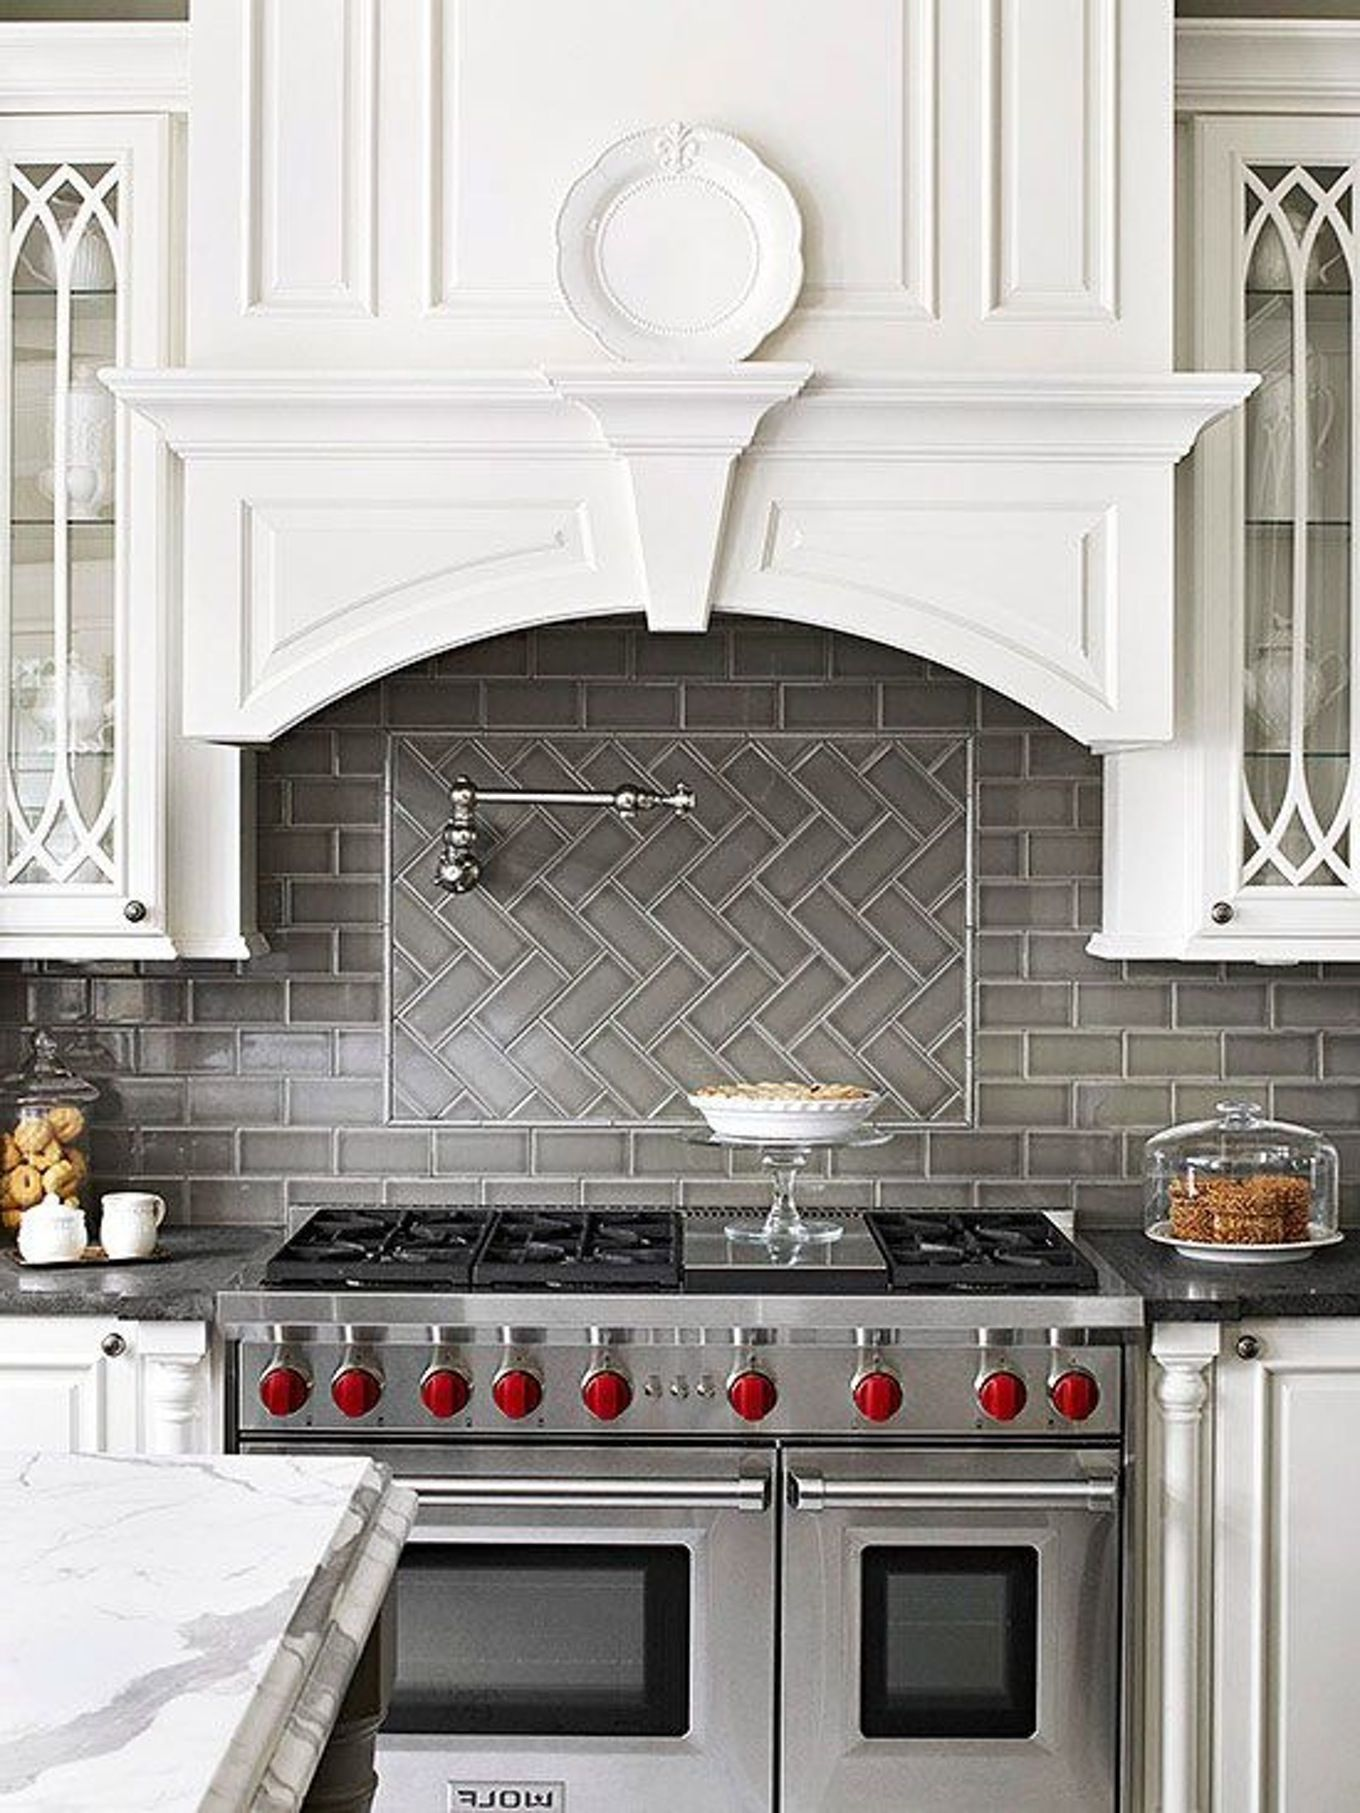 Interesting kitchen decorating ideas with elegant lowes tile backsplash lowes tile backsplash kitchen tiles lowes lowes backsplash for kitchen